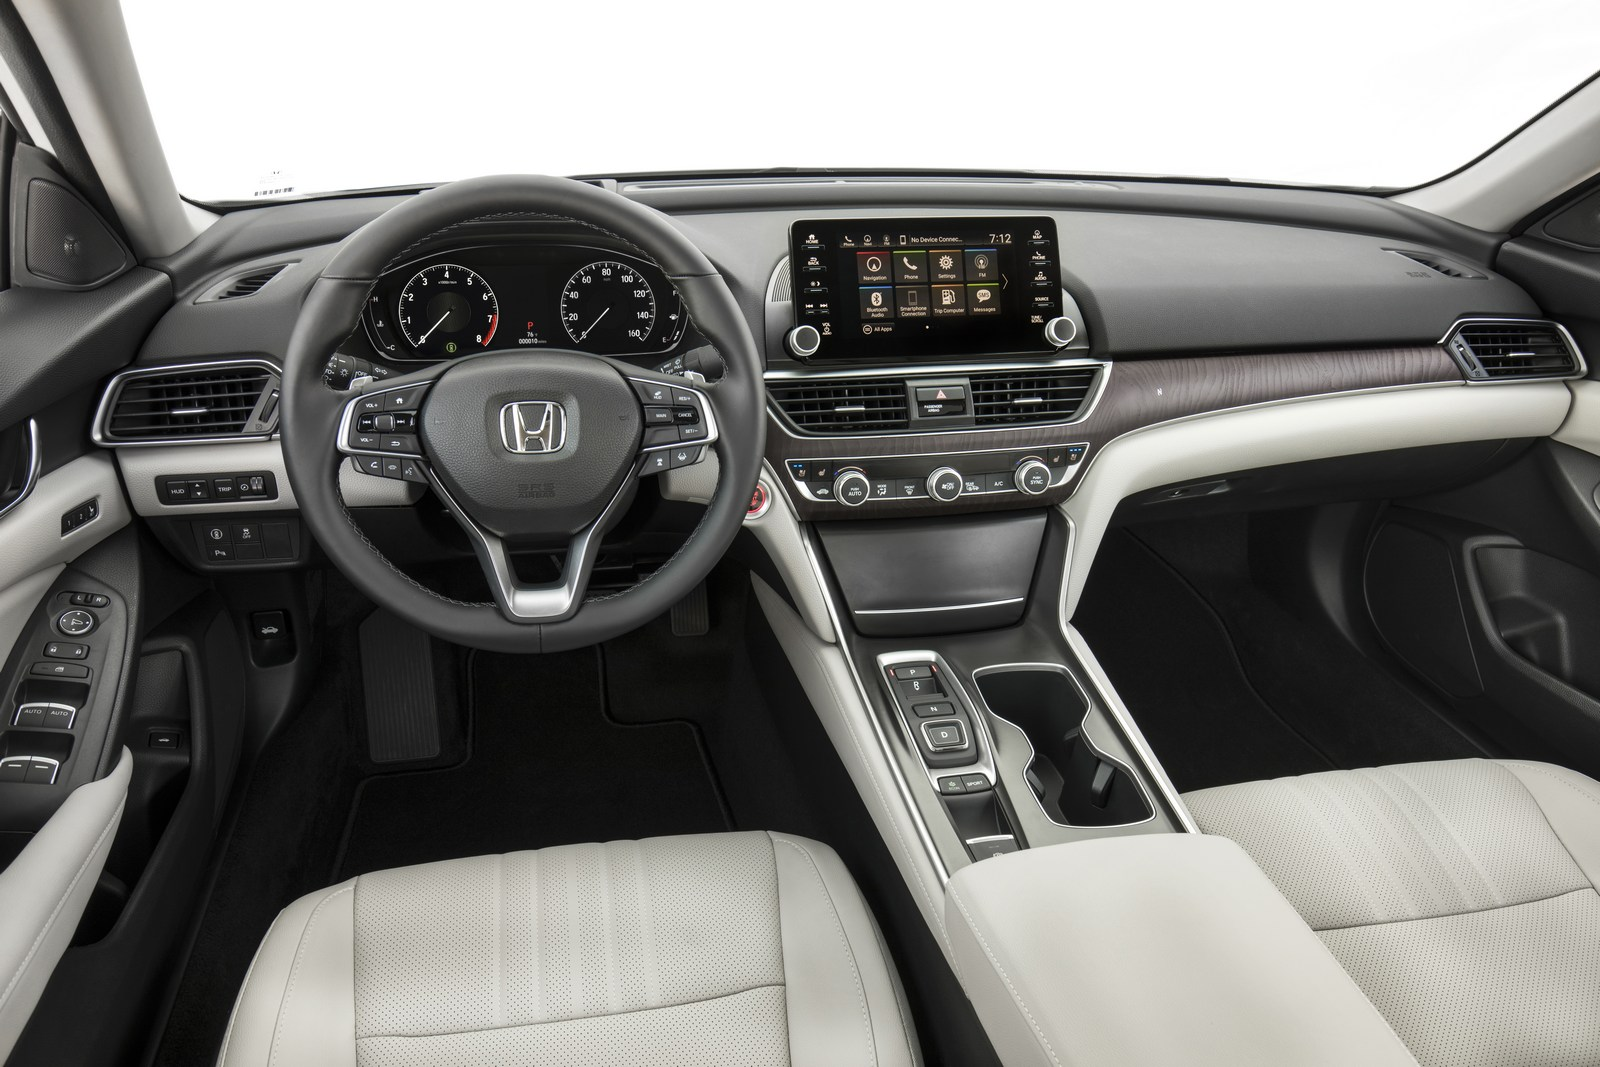 The Good News Continues Inside Where Design And Quality Seems Match That Of Hondas Upscale Brand Acura Especially With Large Touch Screen